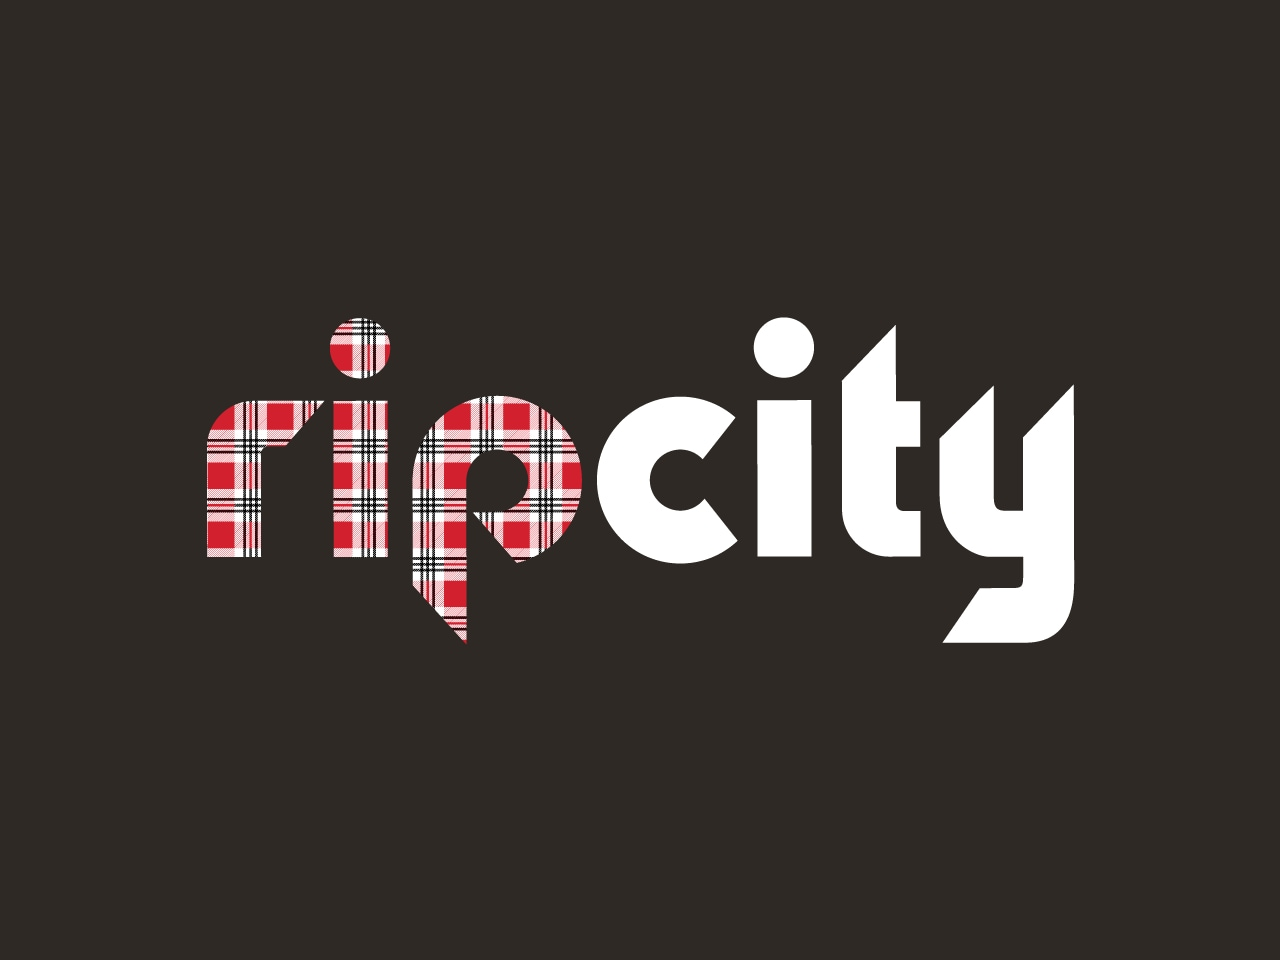 Rip city wallpaper